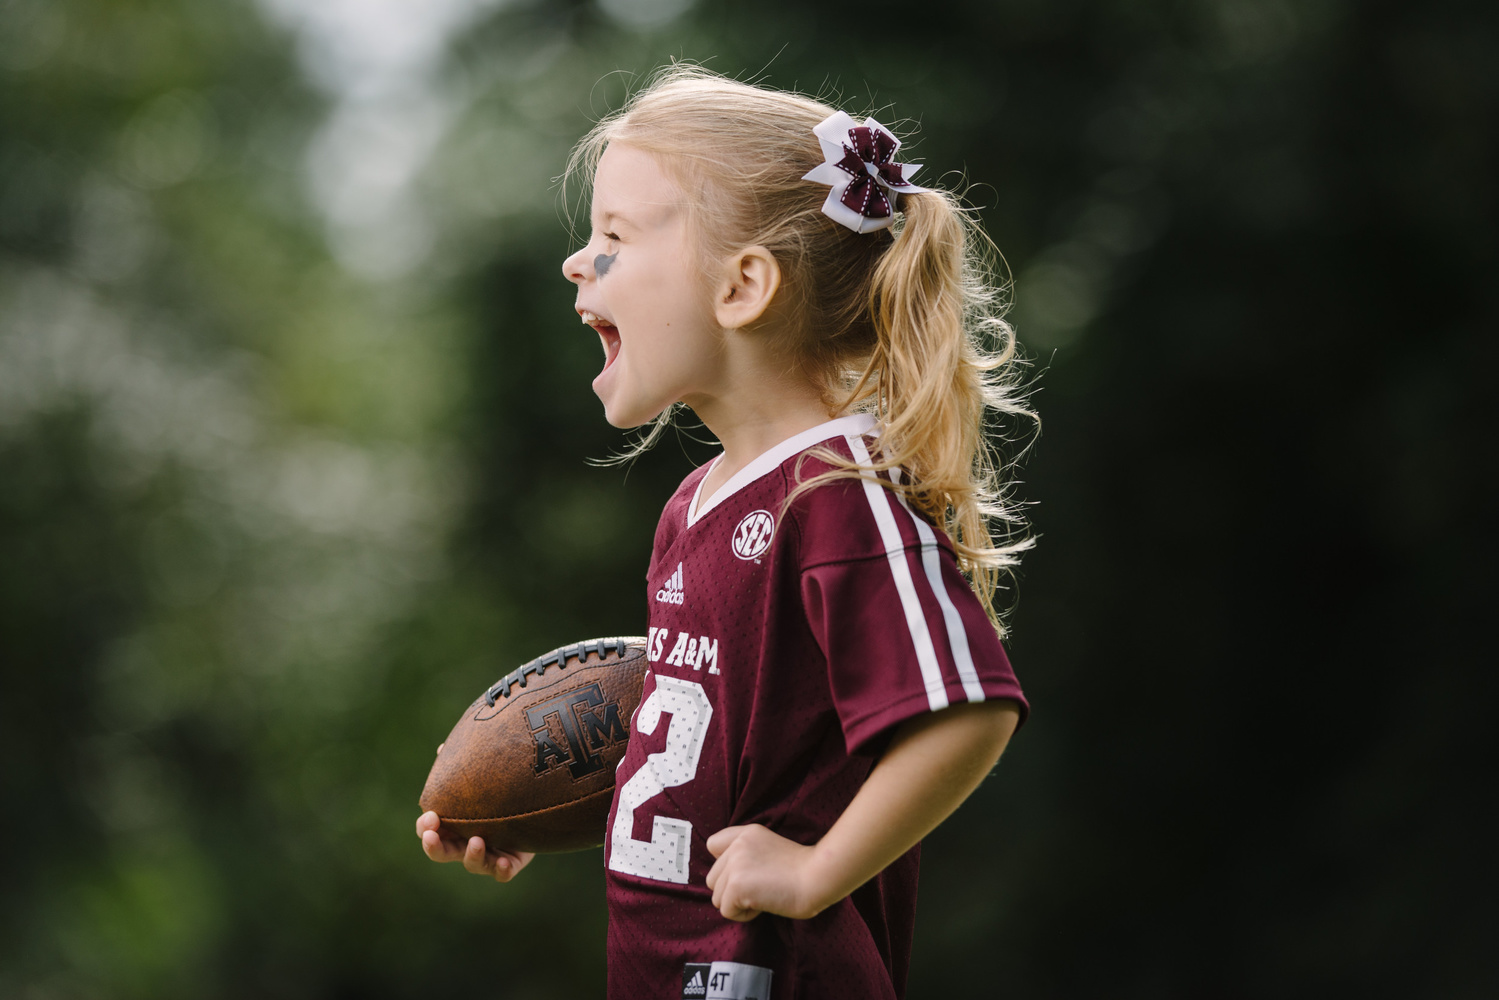 Portrait of a little girl in a football uniform